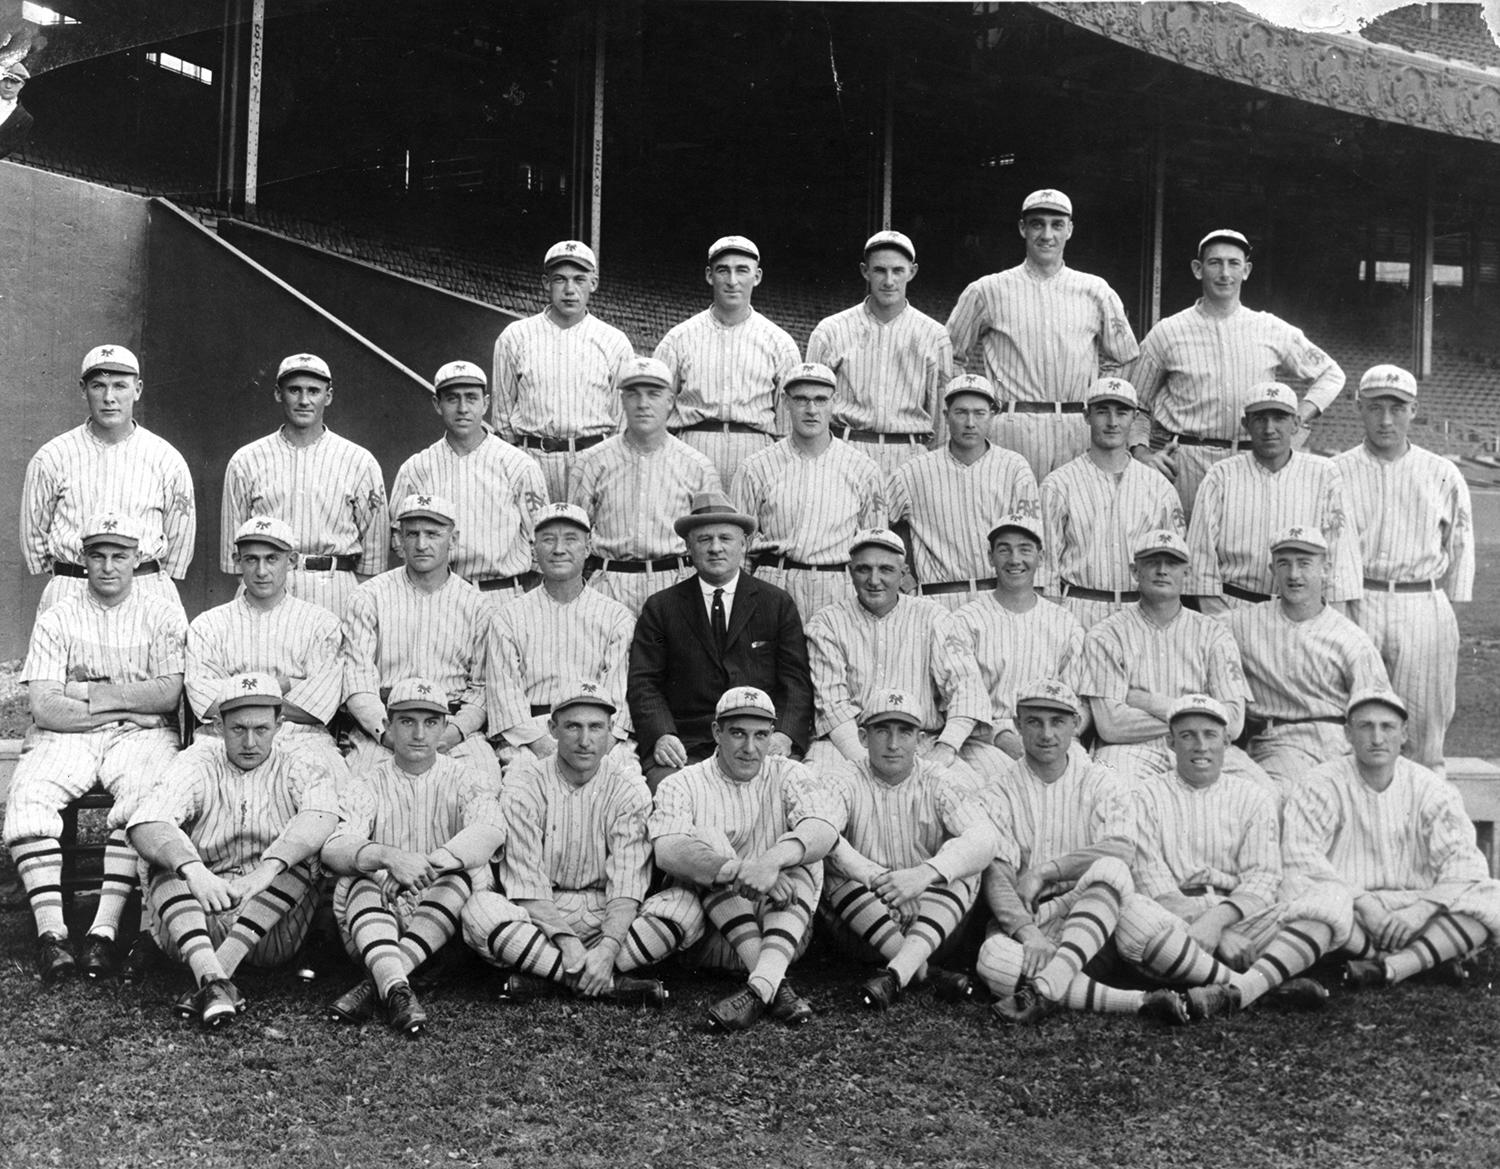 John McGraw's New York Giants, pictured above in 1922, won back-to-back World Series championships in 1921 and 1922. (National Baseball Hall of Fame and Museum)